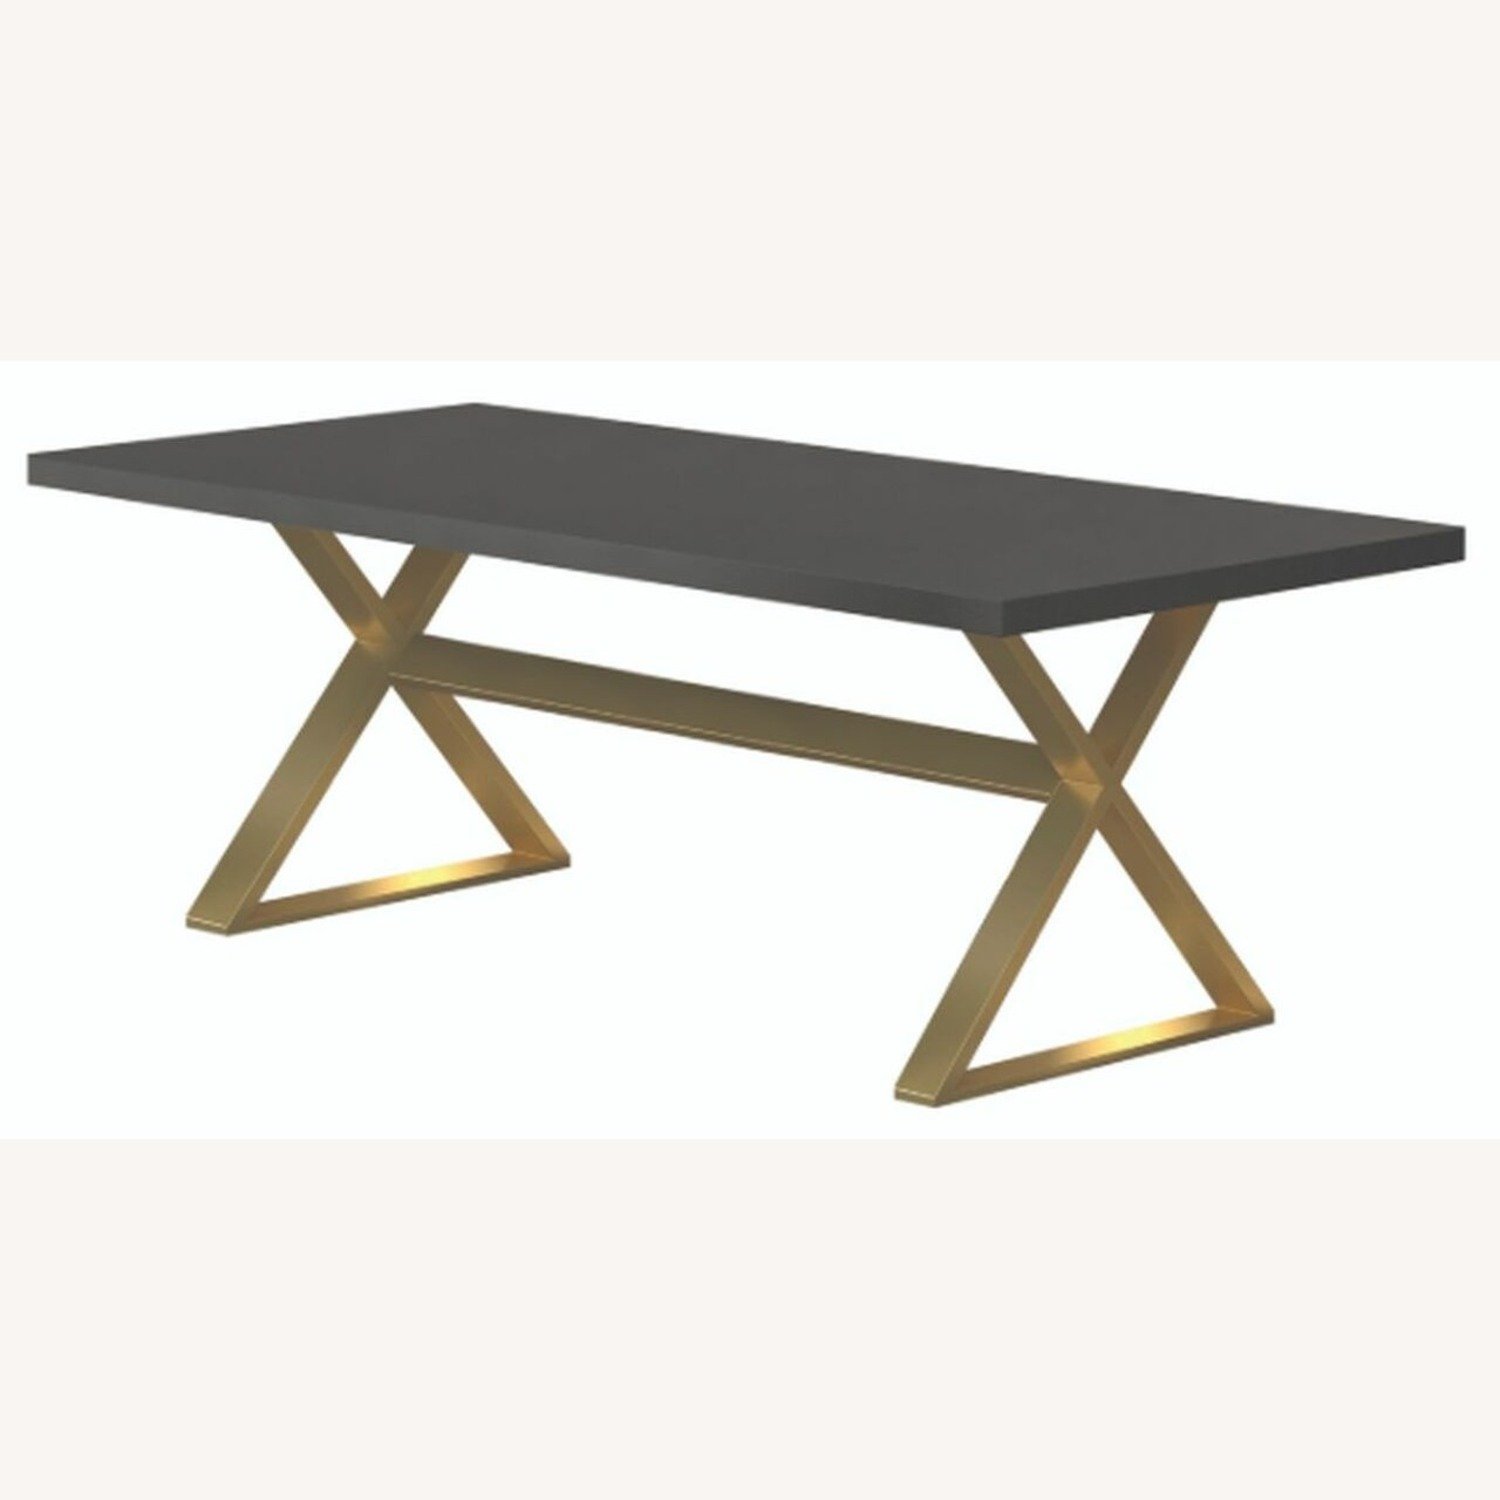 Dining Table In Dark Walnut W/ Aged Gold Base - image-1